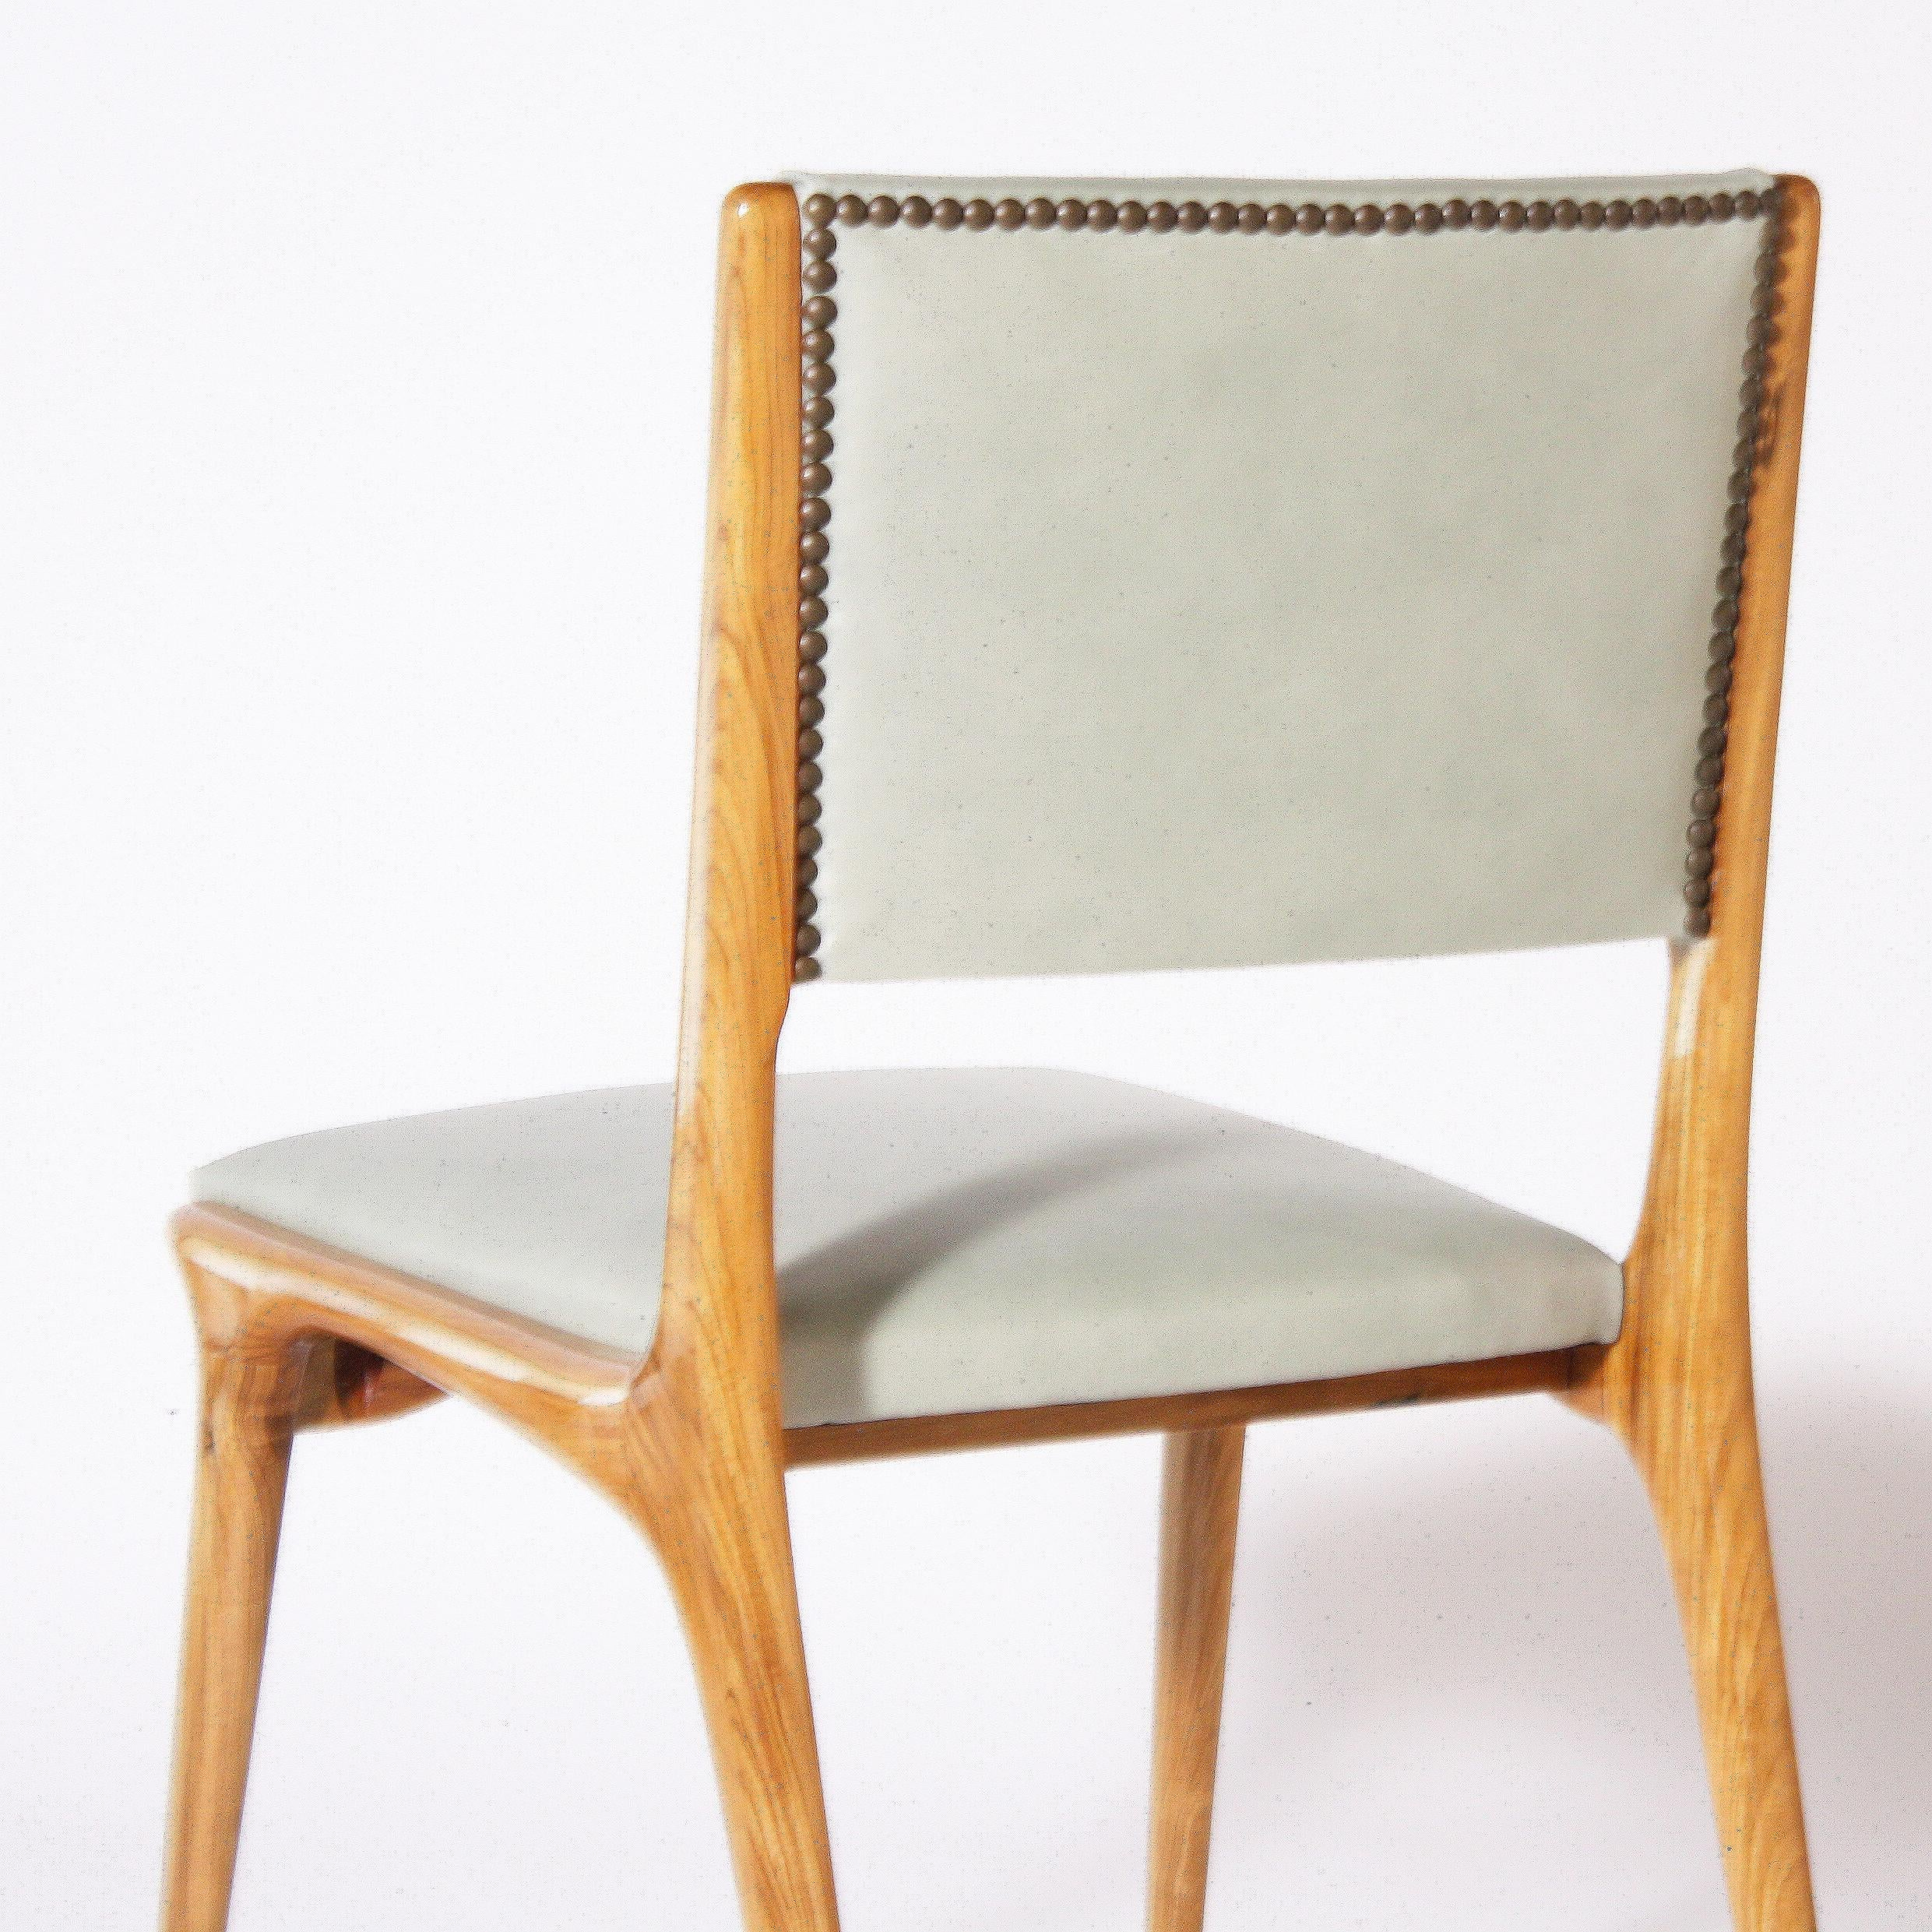 Italian Chair Covered In Leather, Circa 1950 In Good Condition For Sale In  Dallas,